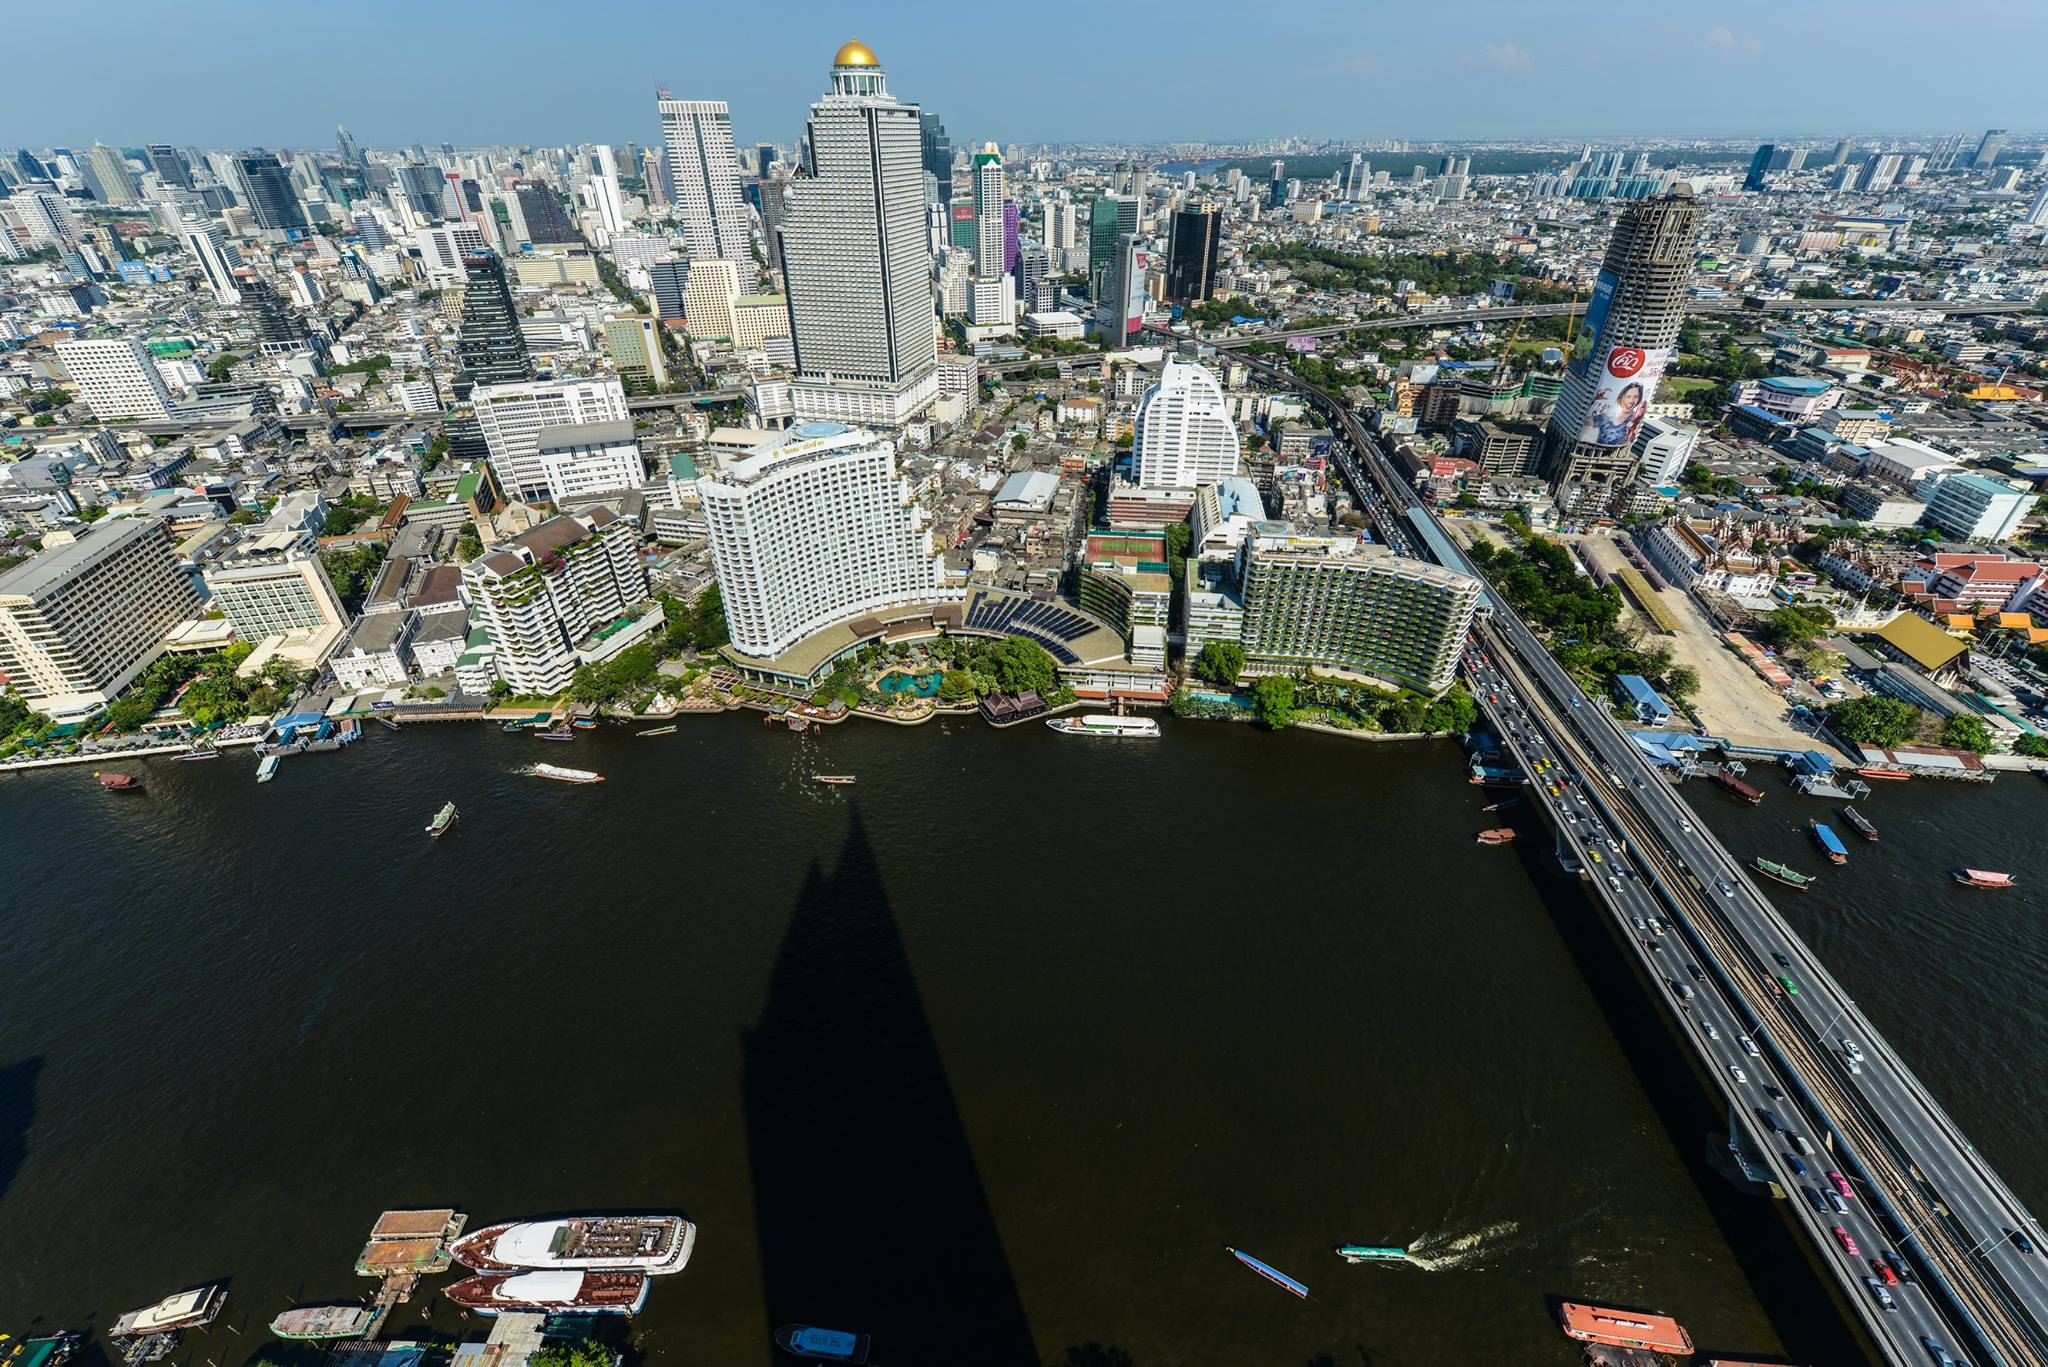 VisionQuest Thailand Property Agency's The River Penthouse 942sq.m spectacular 180 degrees river and city views 24